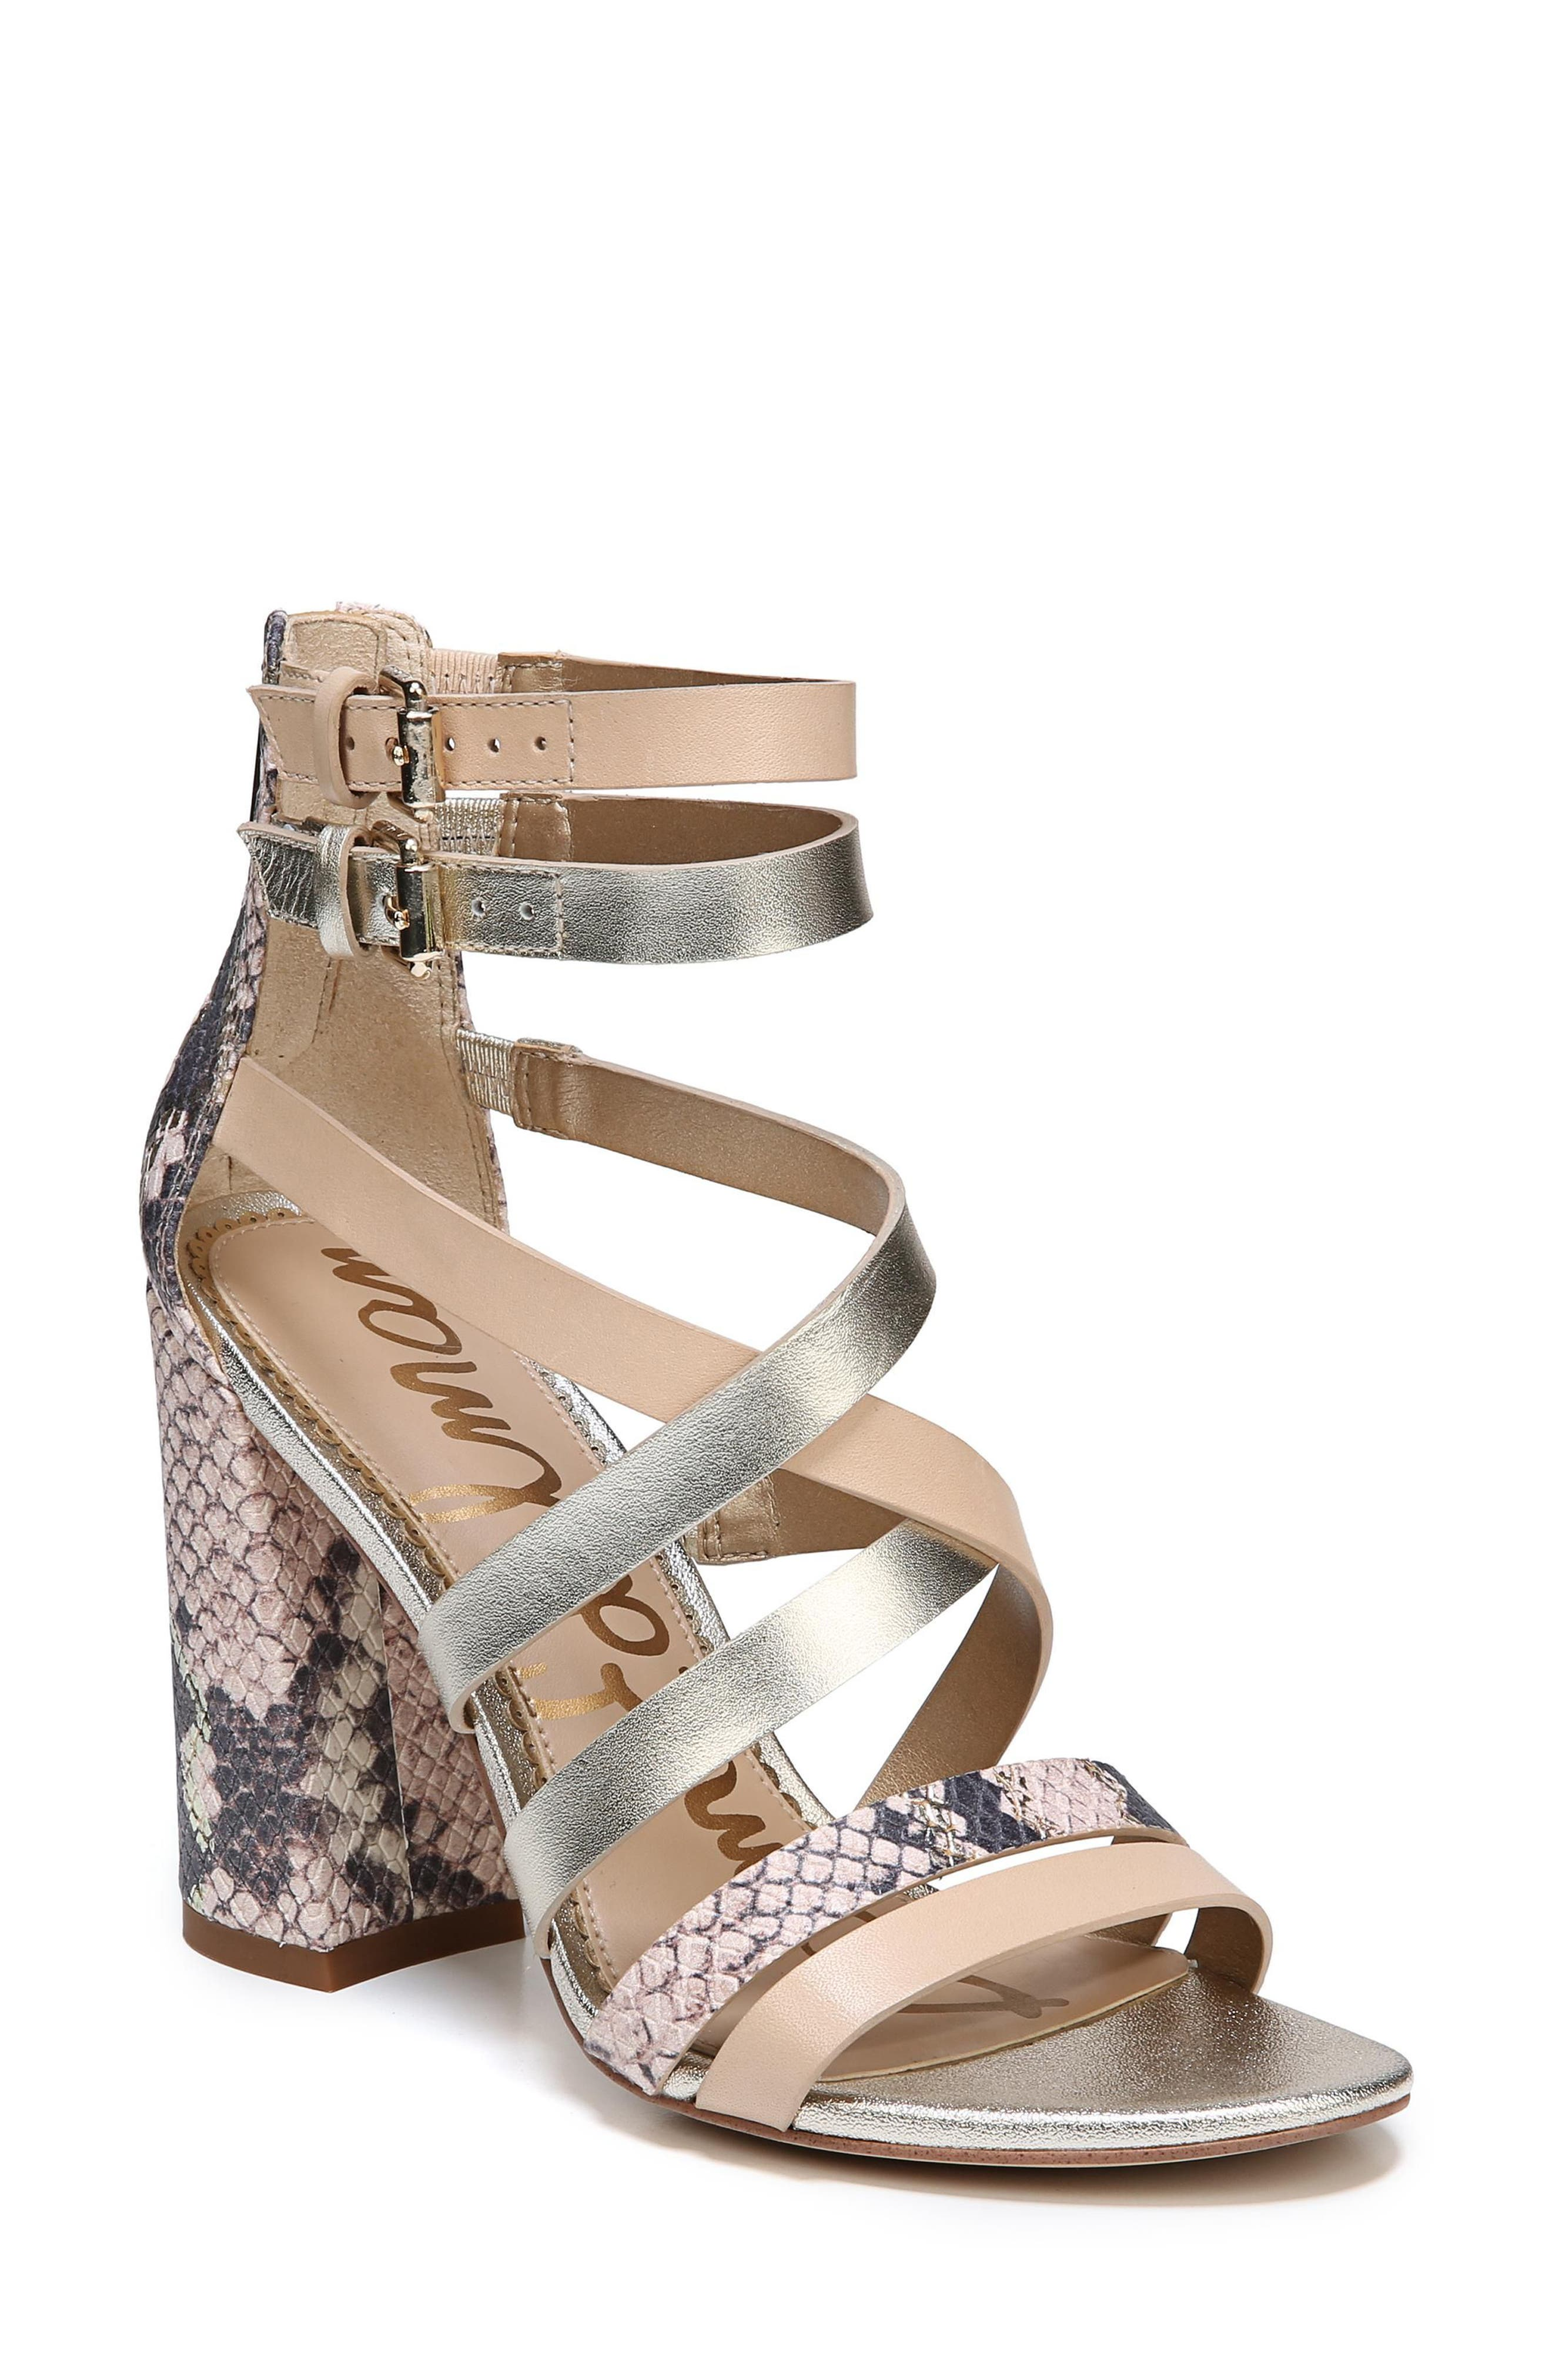 Yema Block Heel Sandal,                             Alternate thumbnail 9, color,                             NATURAL/ PINK/ JUTE